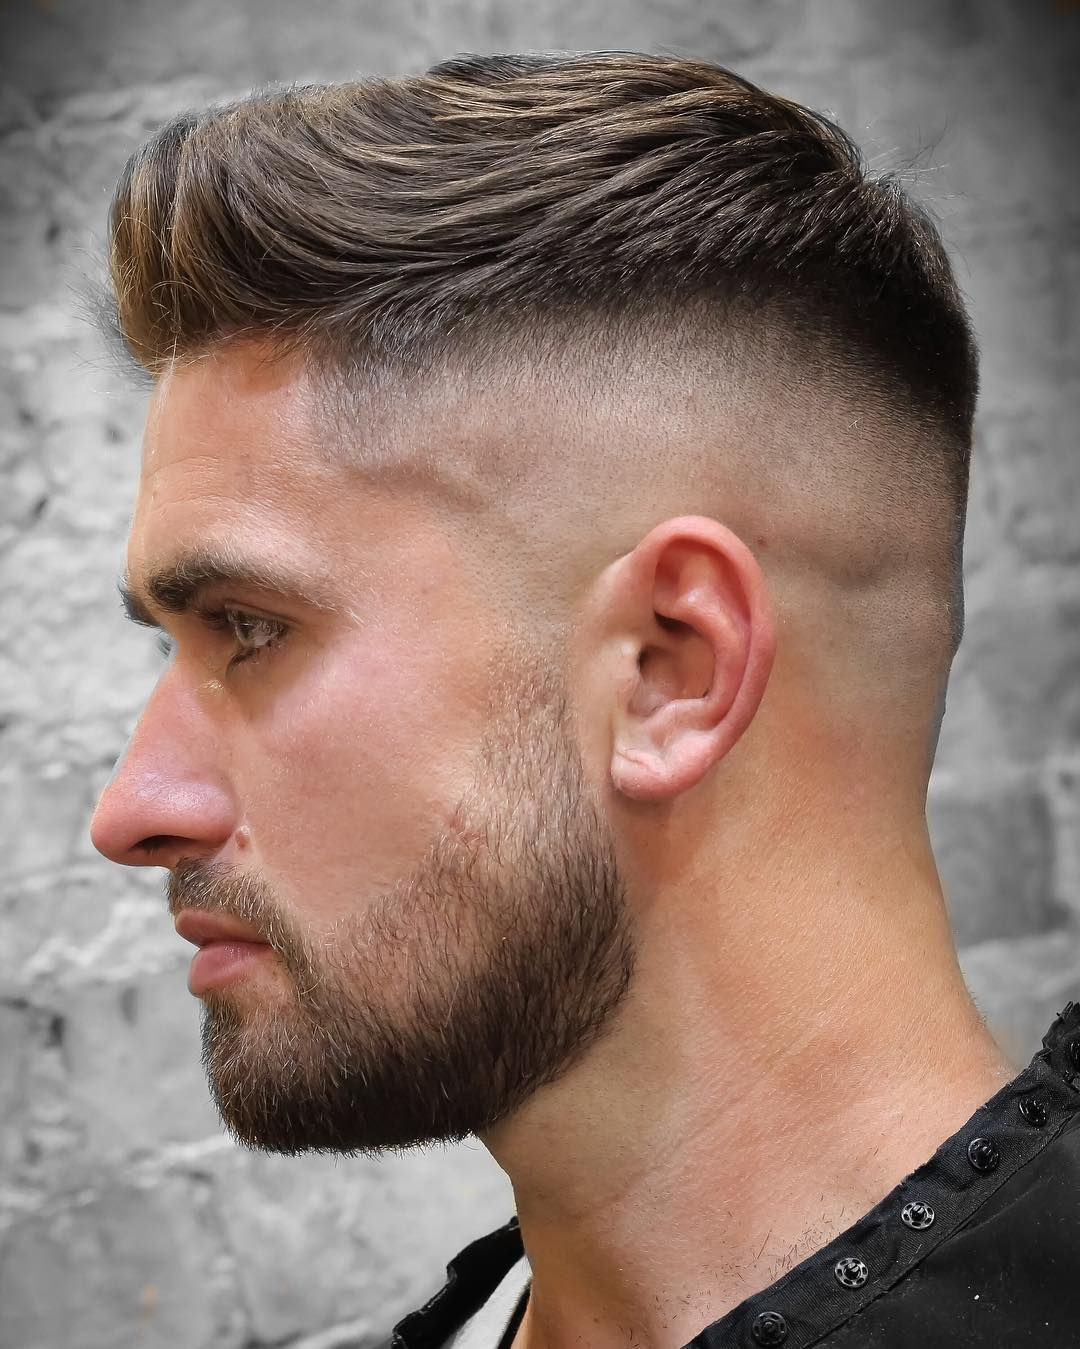 Best ideas about Mens 2019 Haircuts . Save or Pin Mens hairstyles 2019 Hair styles in 2019 Now.